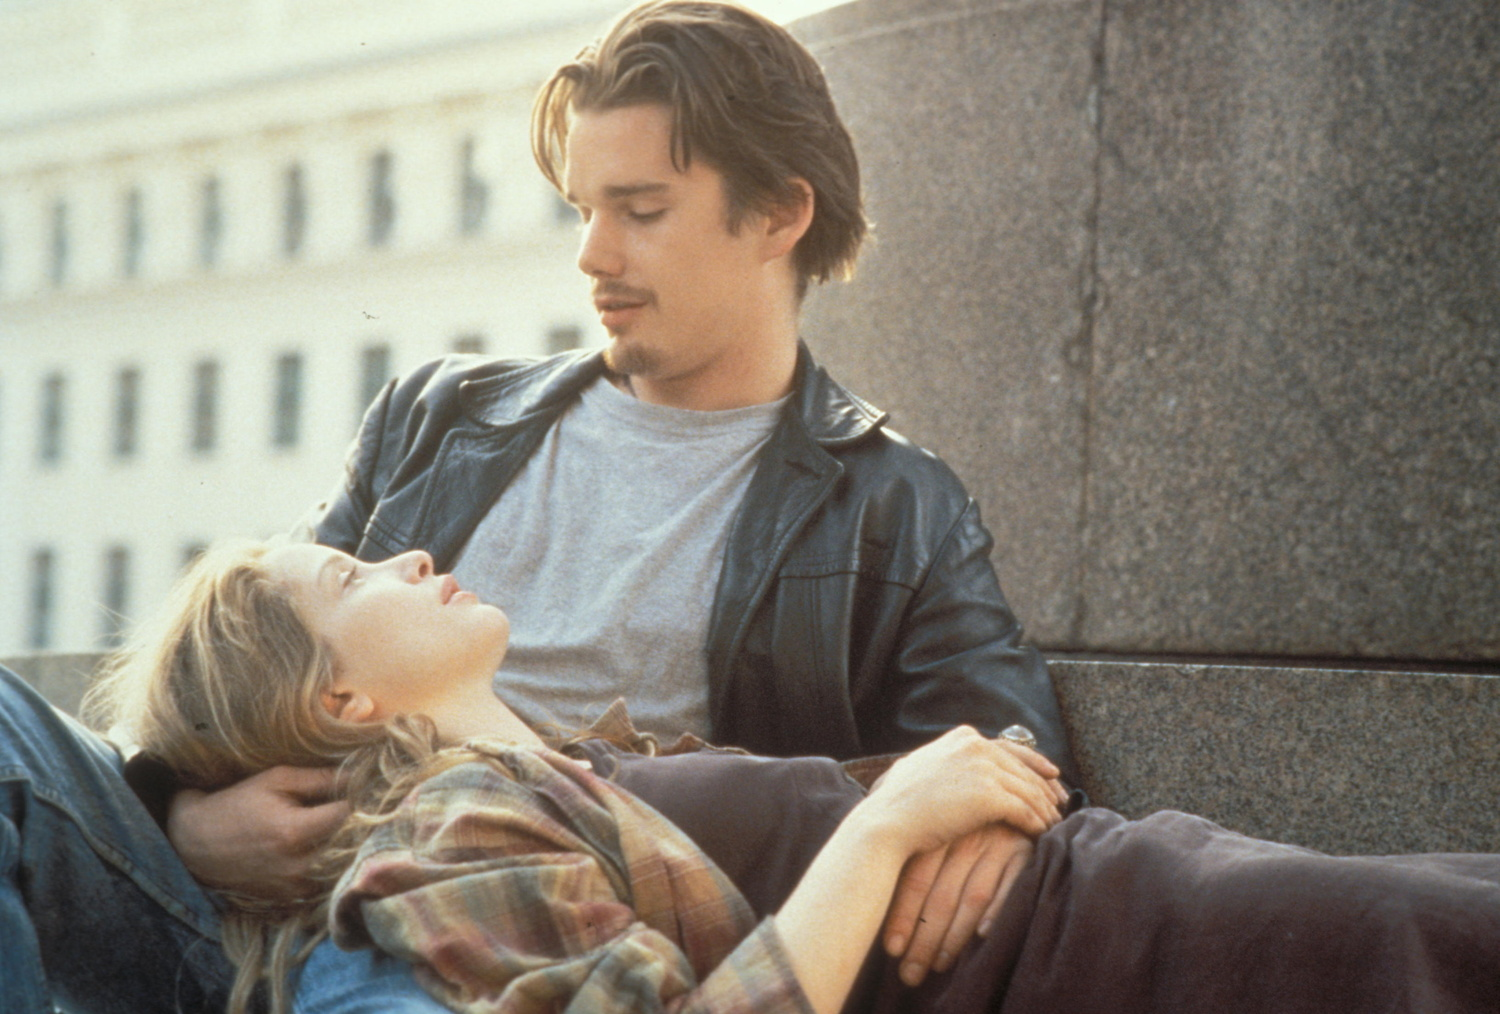 phụ nữ 8 Bộ phim cho ngày valentine: Before sunrise, before sunset, before midnight  2